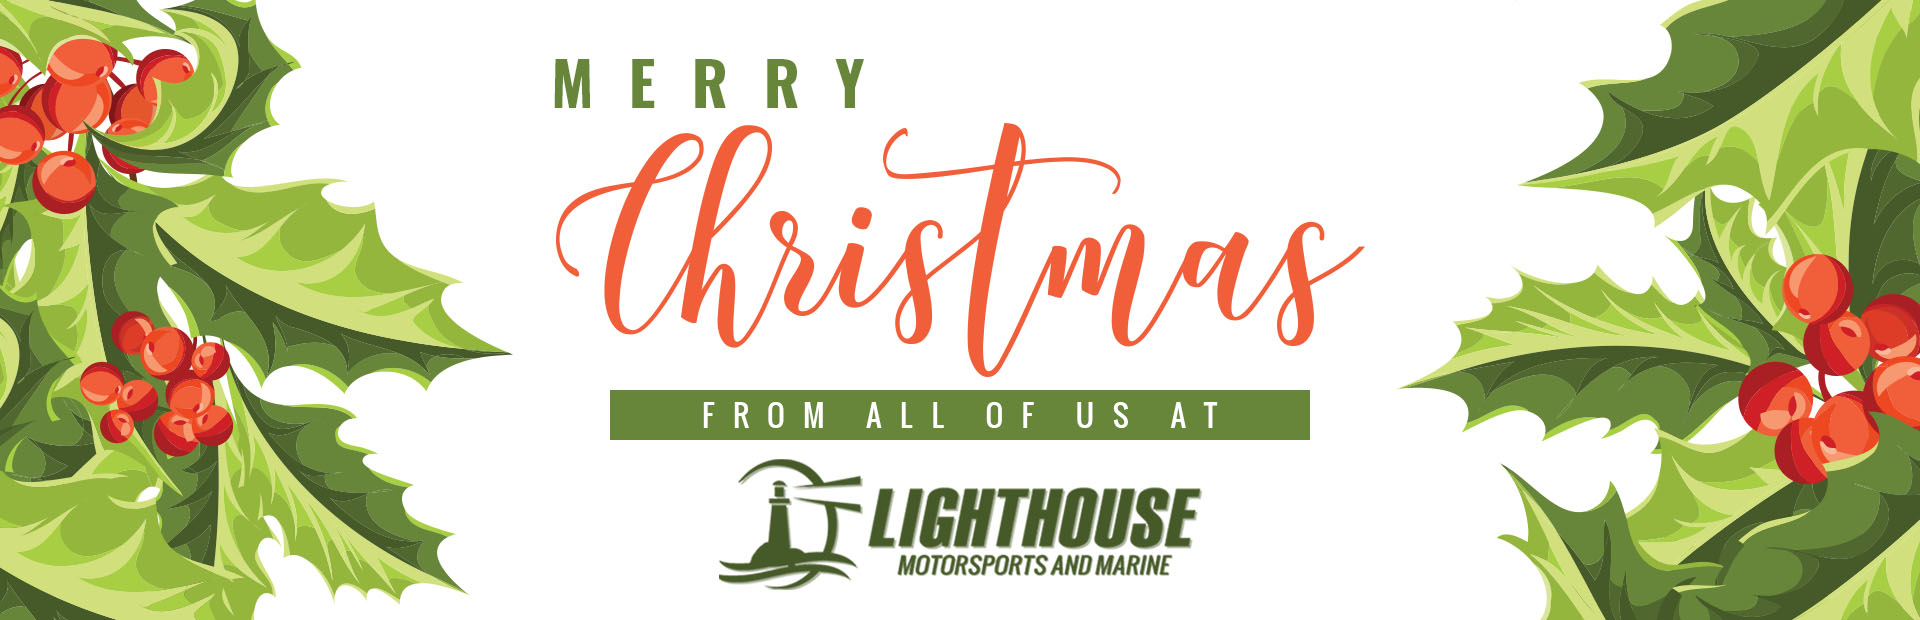 Merry Christmas with Holly from Lighthouse Motorsports and Marine